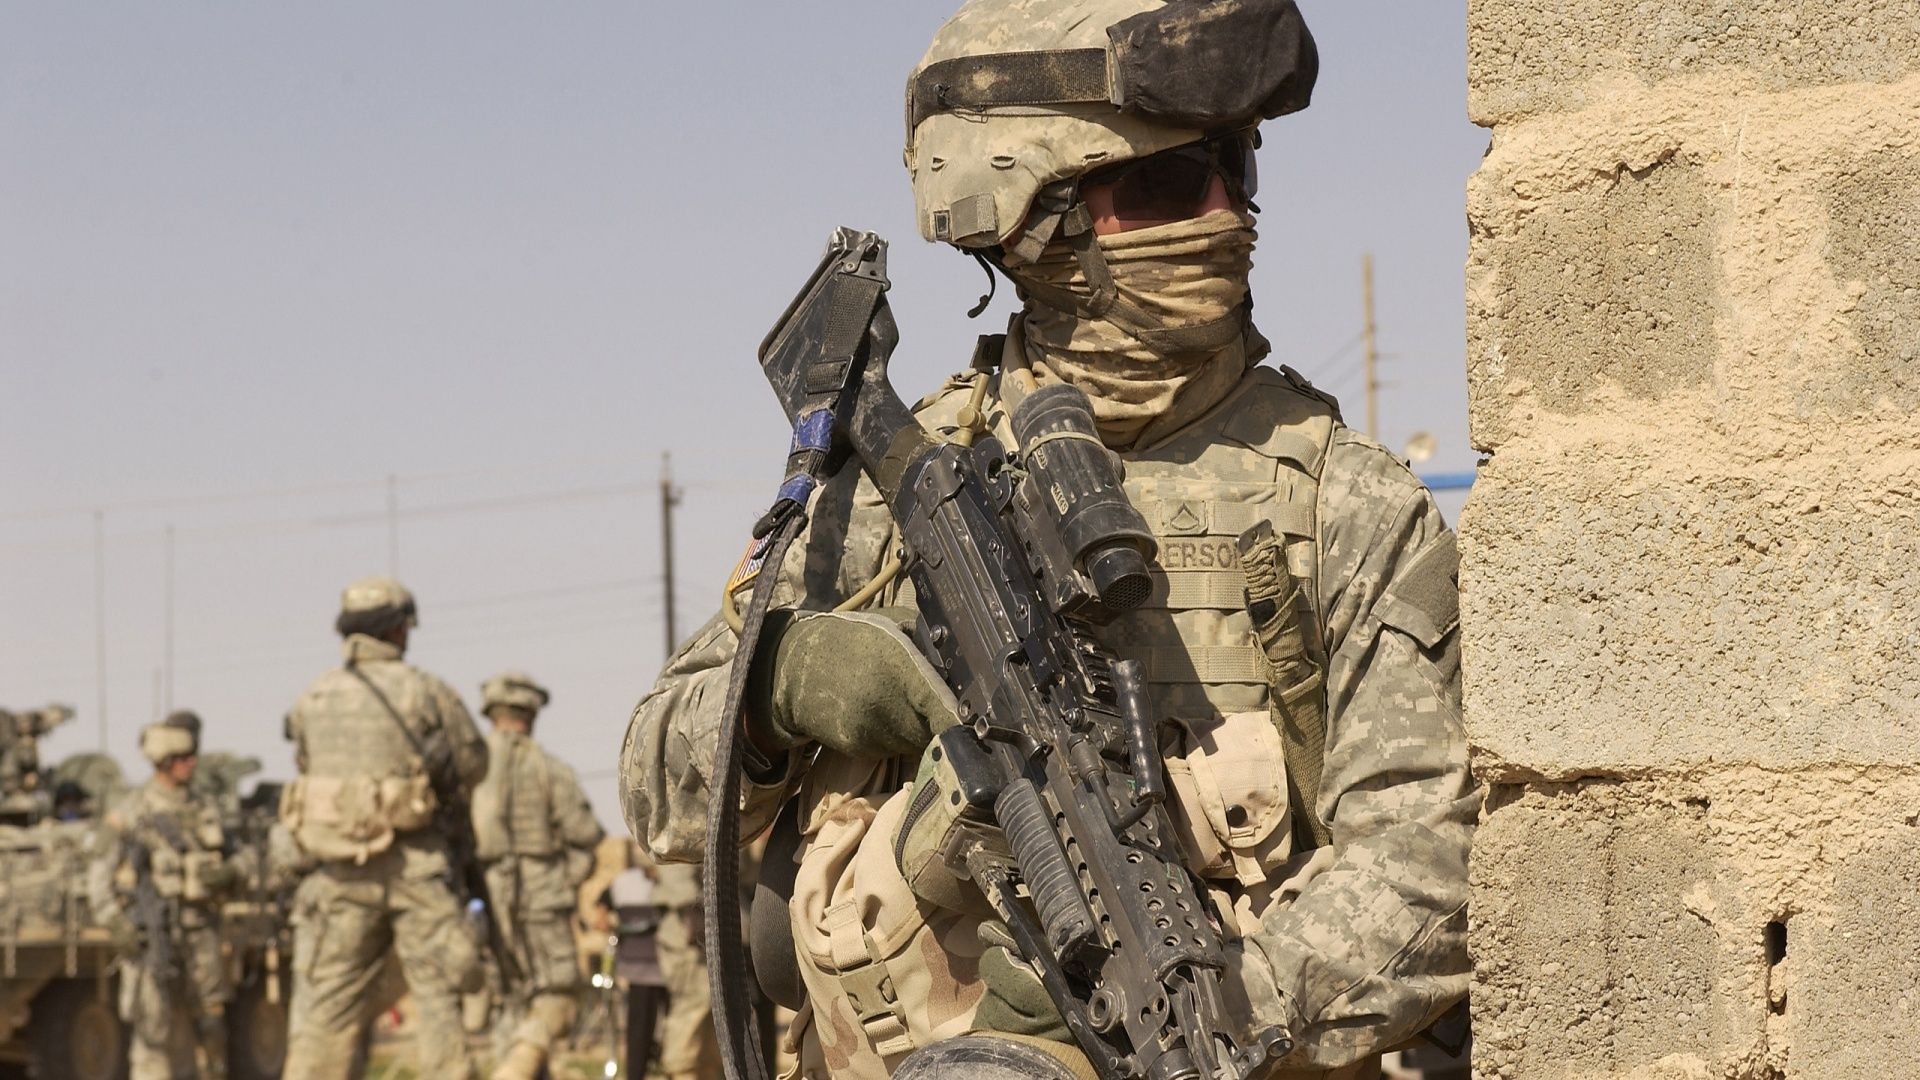 soldier military hd wallpaper wallpapers55com   Best Wallpapers for 1920x1080